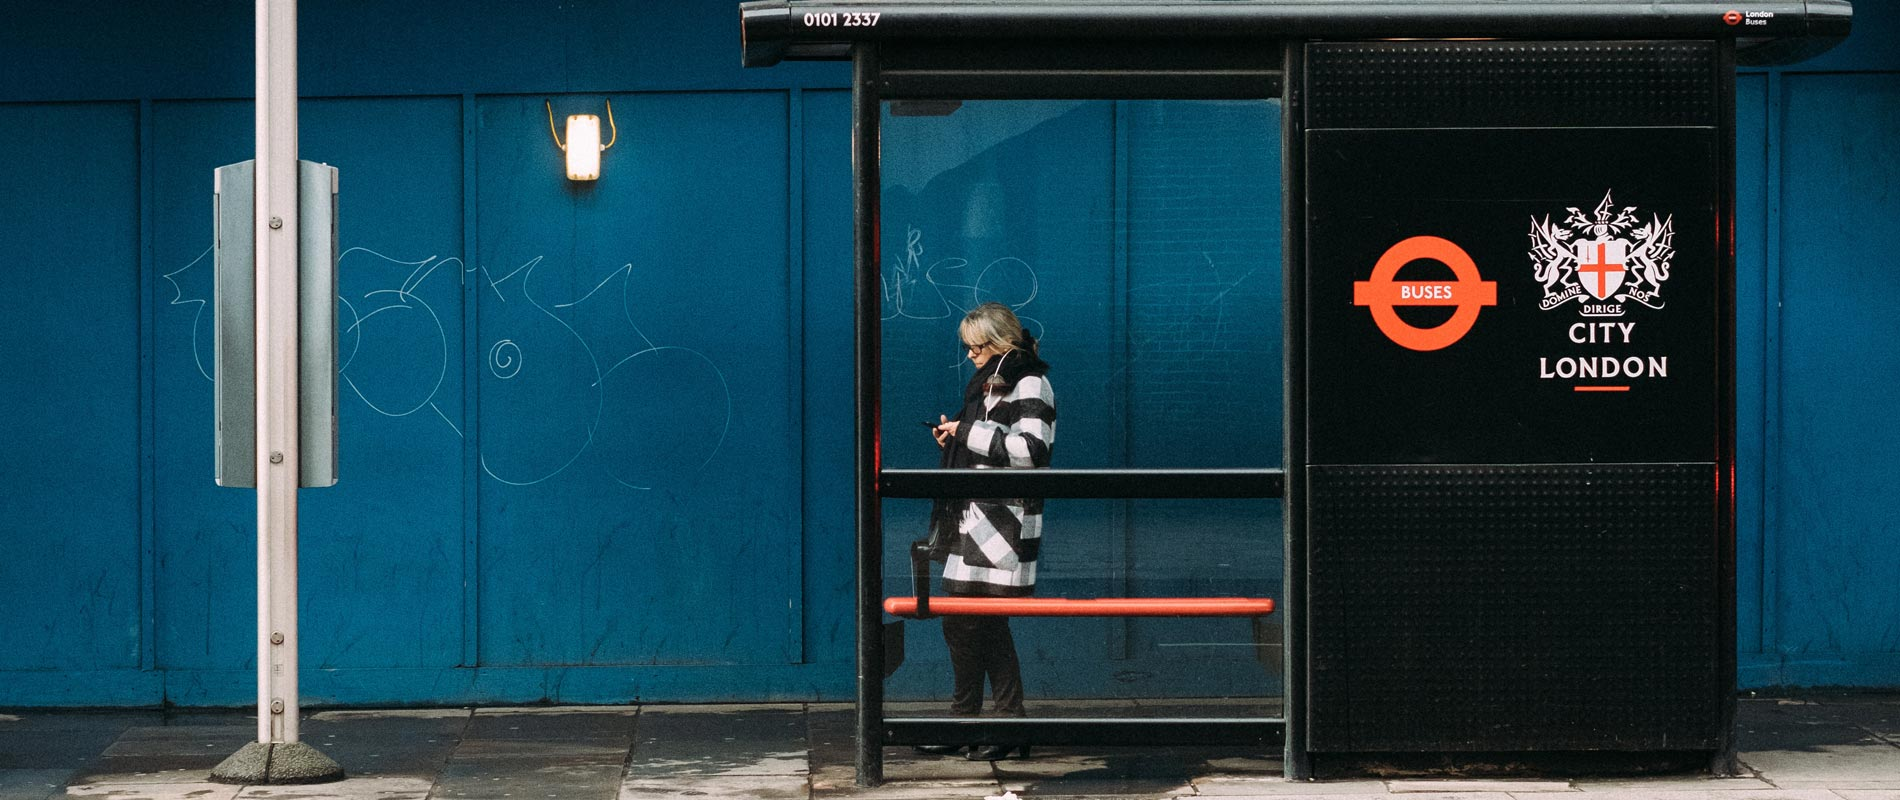 lady waiting at a bus stop in London